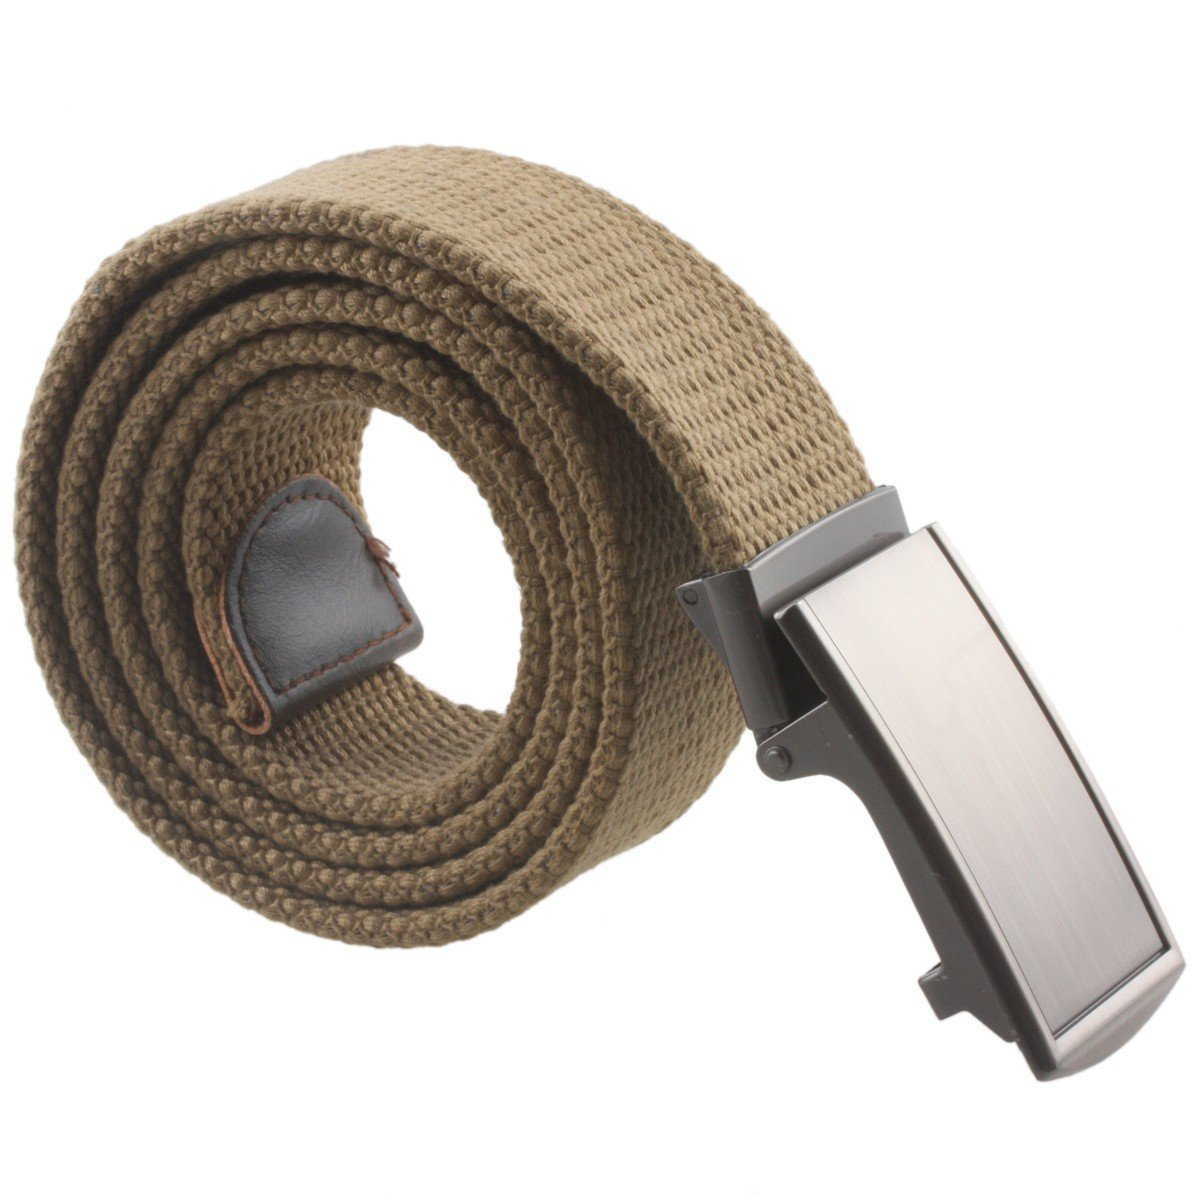 Sportmusies Canvas Web Belts for Men,Solid Color Military Style Casual Golf Belts with Automatic Buckle